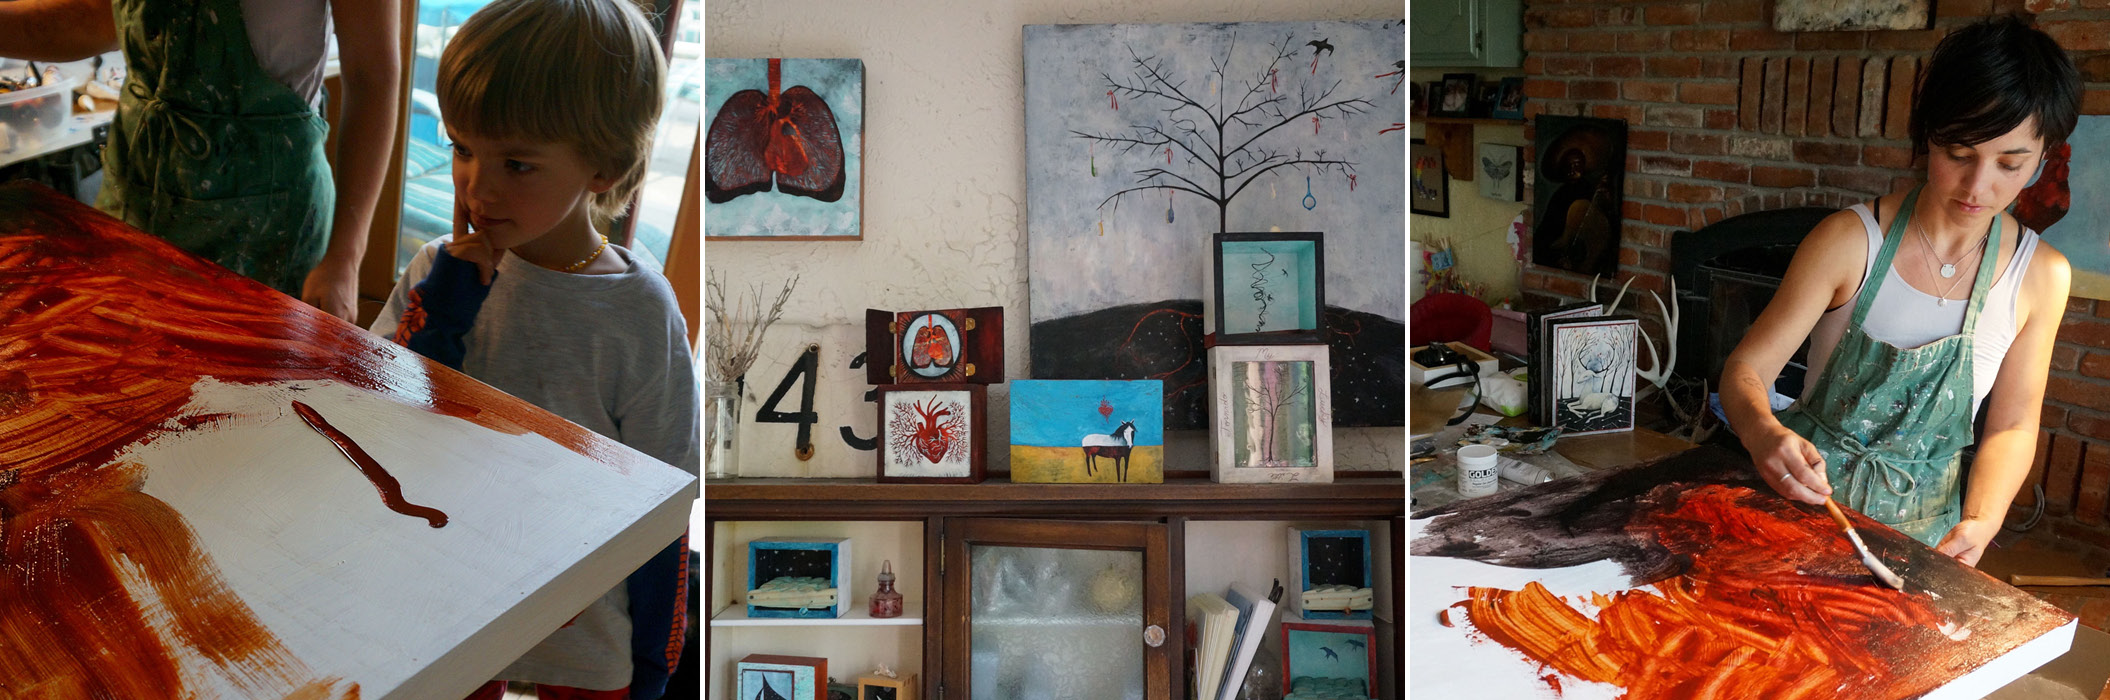 Christine Sutton, Montana Artist. Montana Food, Travel & Culture Blog